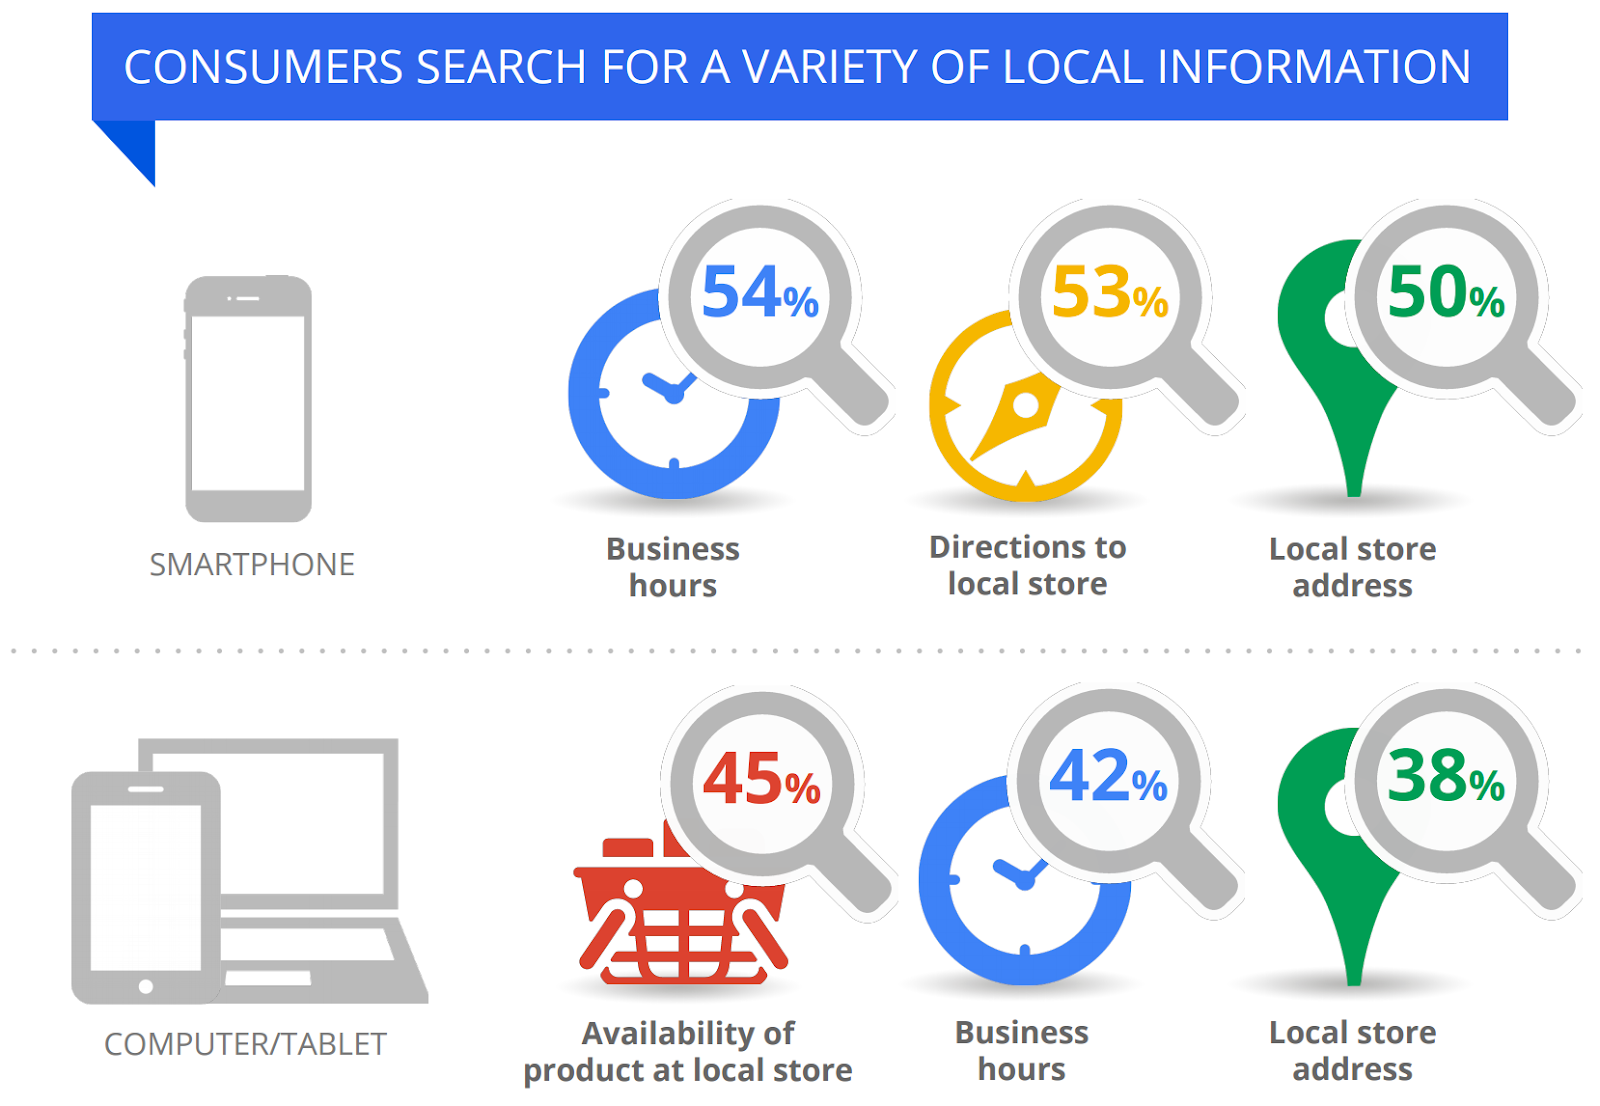 Local Search trends. Image Source: https://www.theukdomain.uk